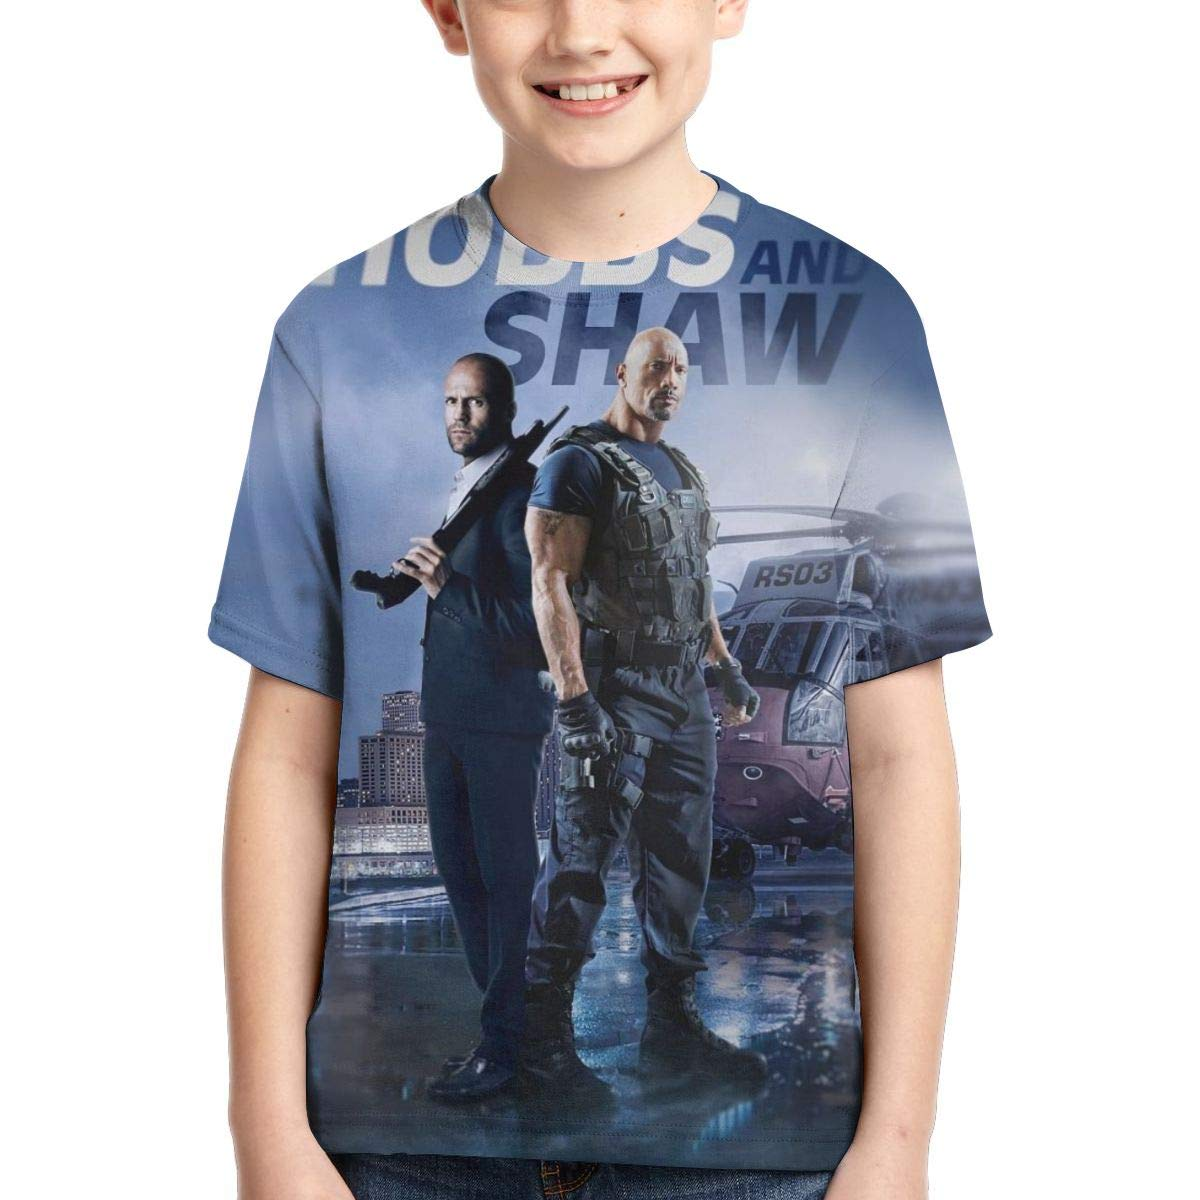 Lula Campbell Short Sleeves FA-st Fur-ious Youth and Childrens Round Neck Creative Print T-Shirt Unisex